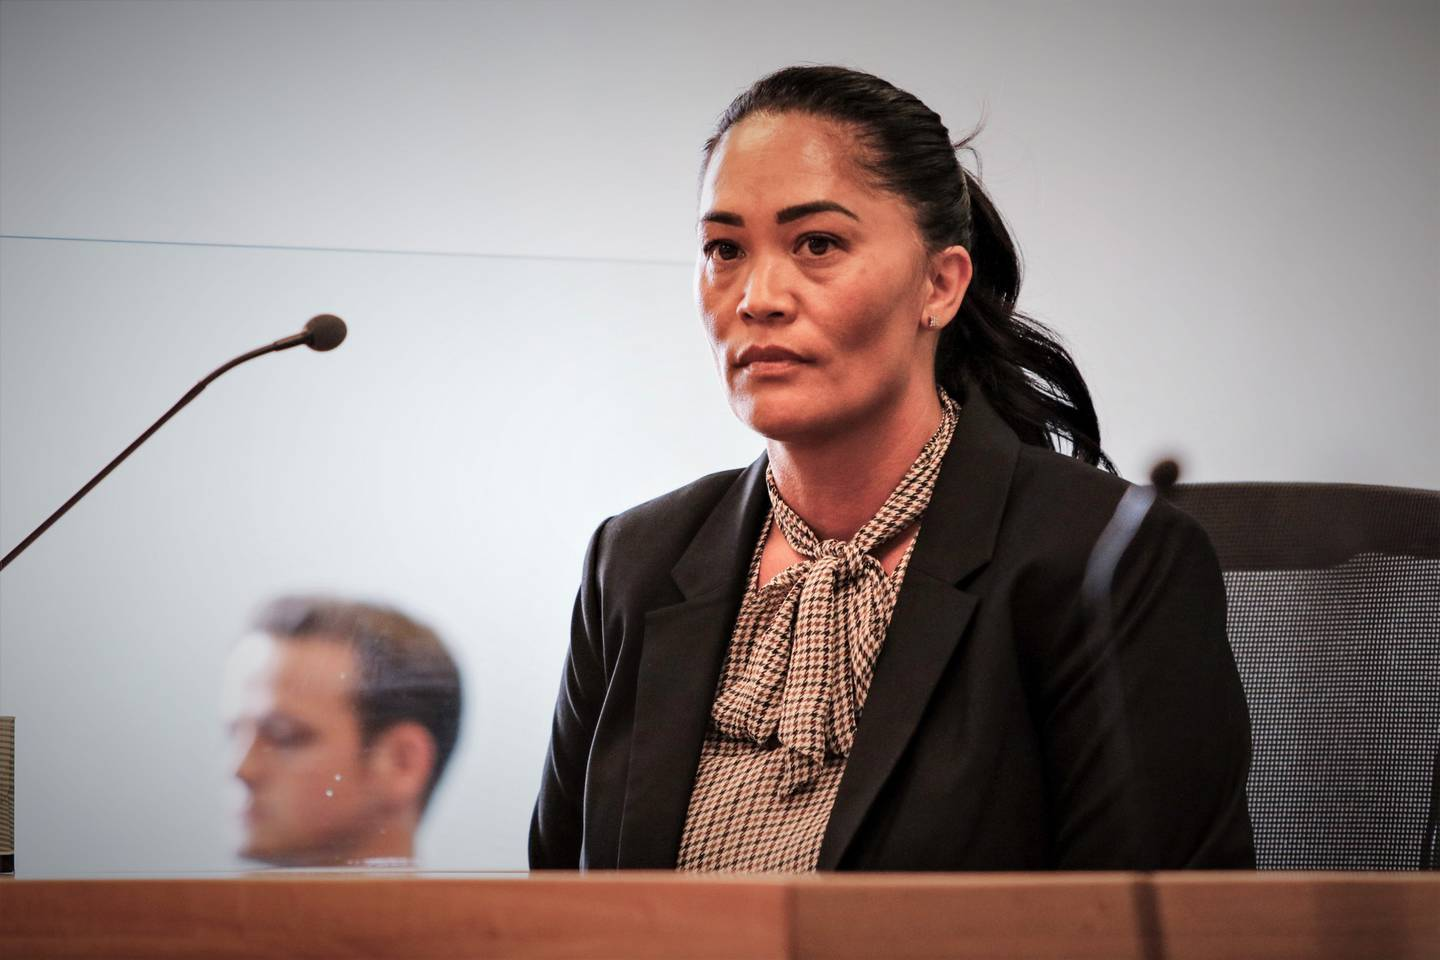 Allison Edmonds was also given immunity after being part of the Gold Coast plot. Photo / Sam Hurley